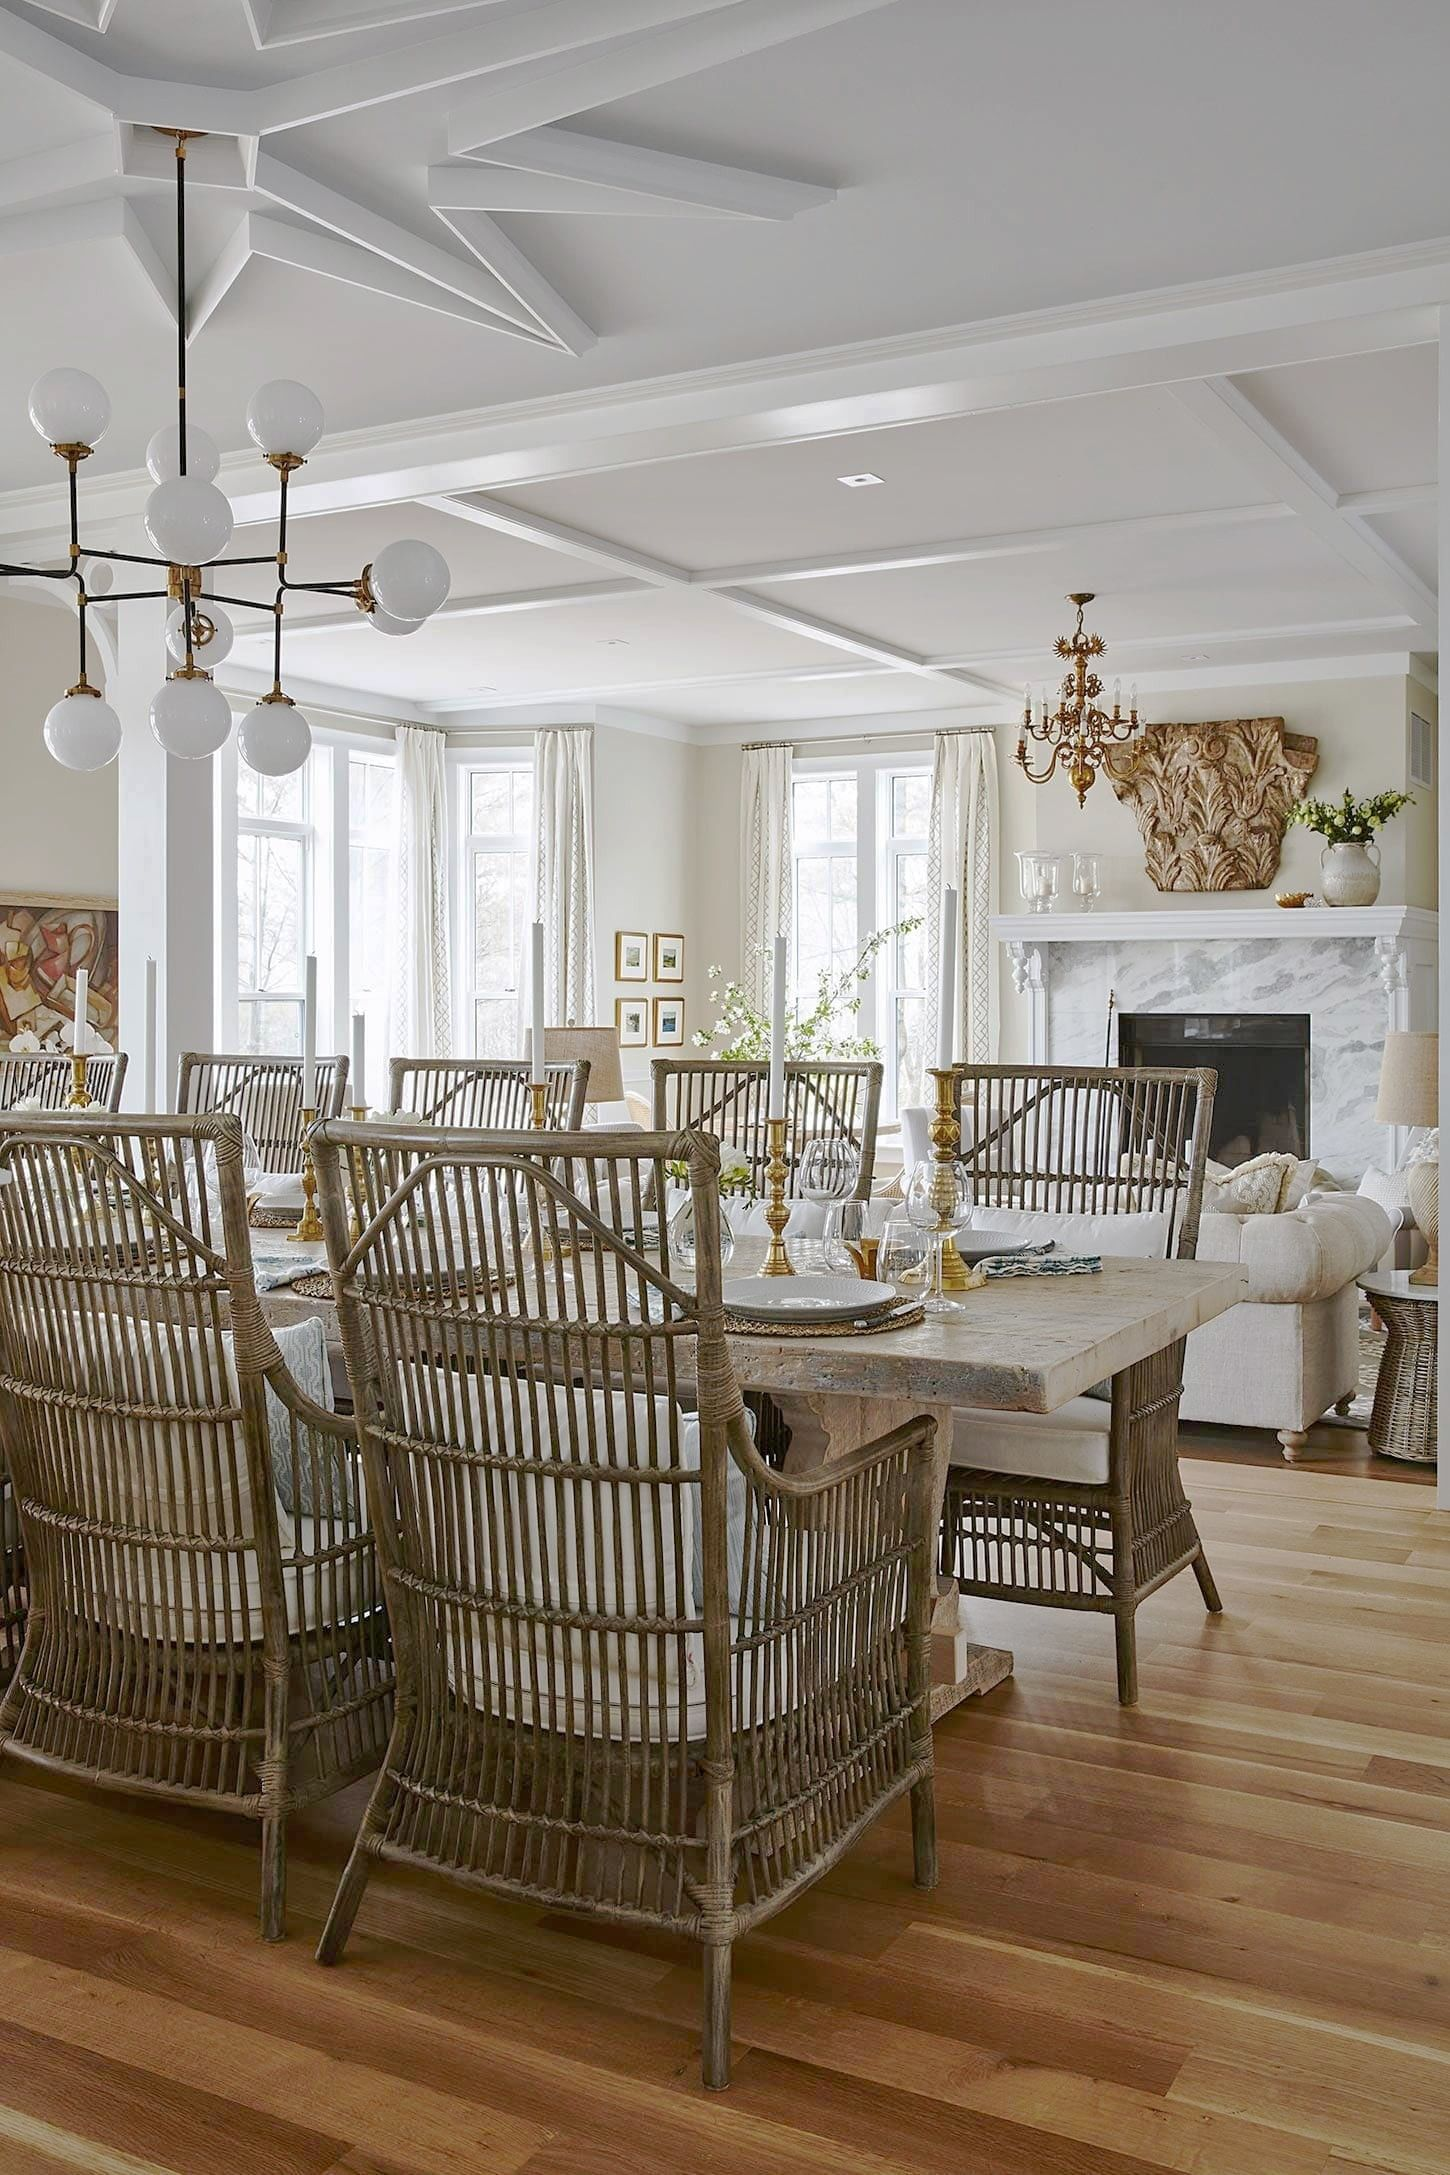 Sarah Off The Grid Dining Room Table Over Looking Fireplace And Seating Area